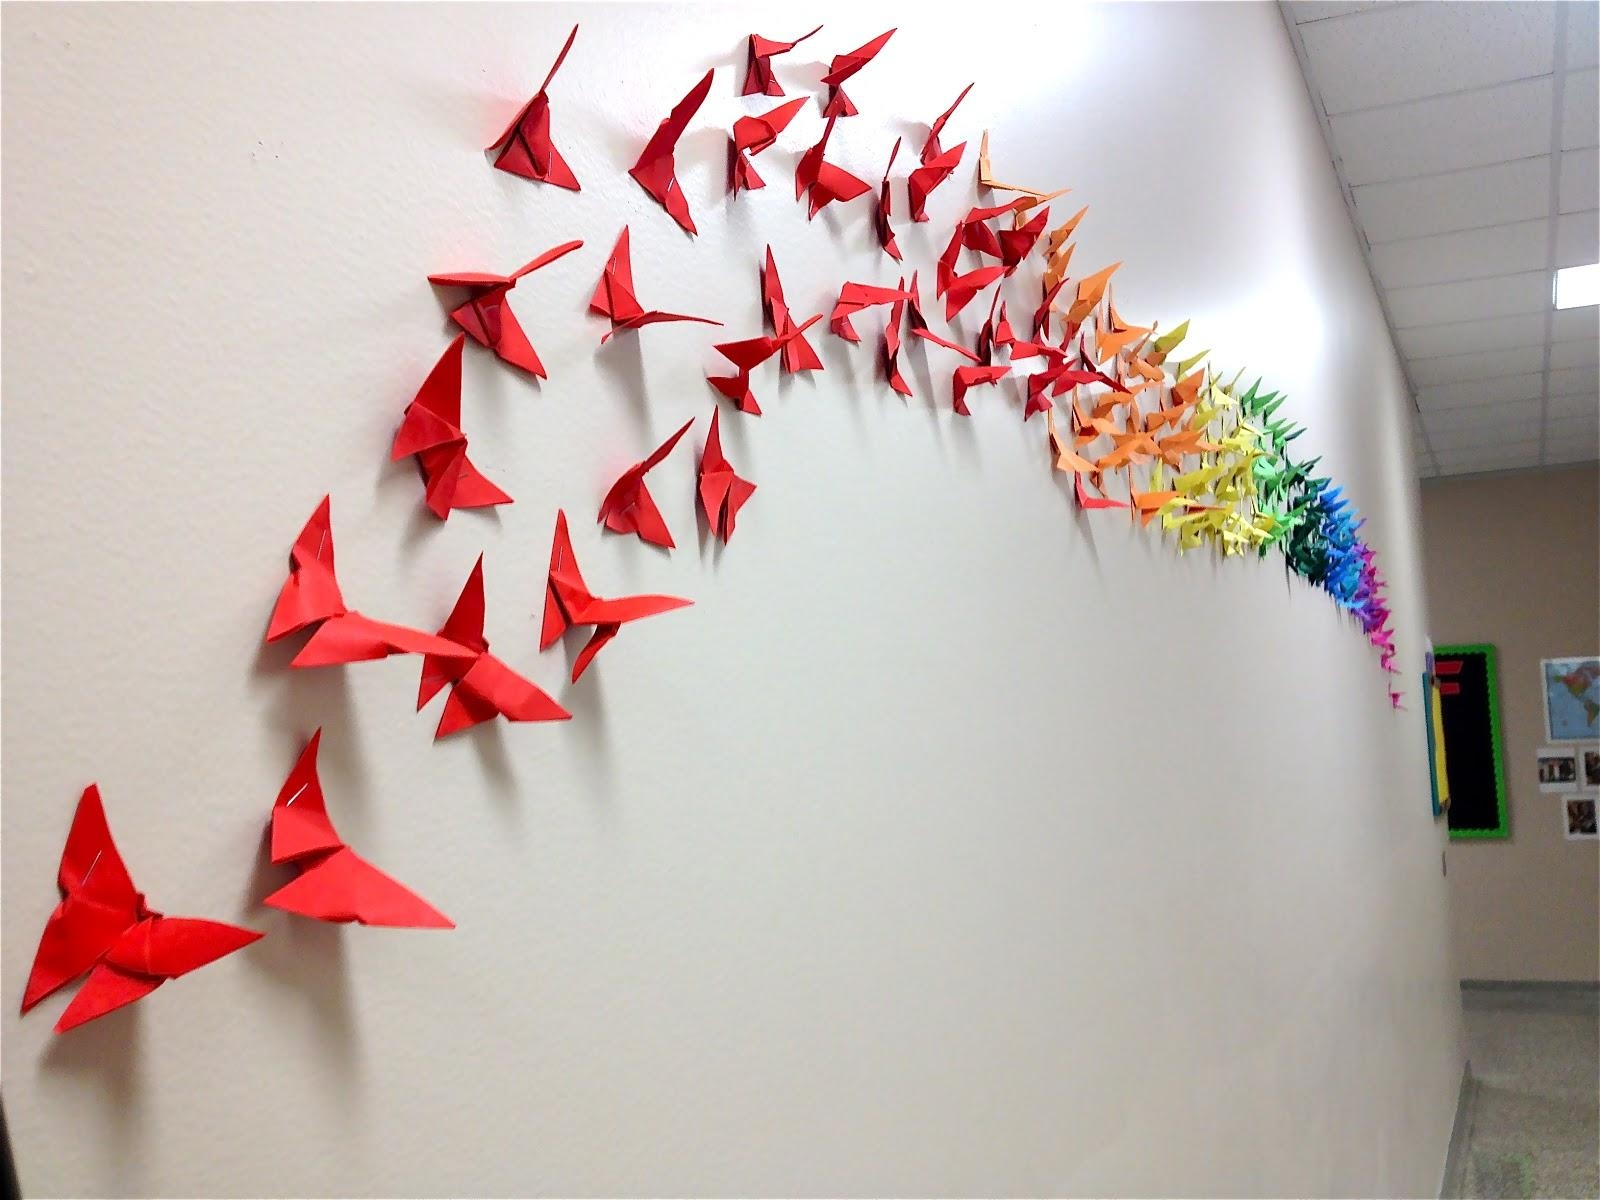 How To Make An Origami Butterfly | Cool2Bkids With Regard To Diy Origami Wall Art (View 20 of 20)